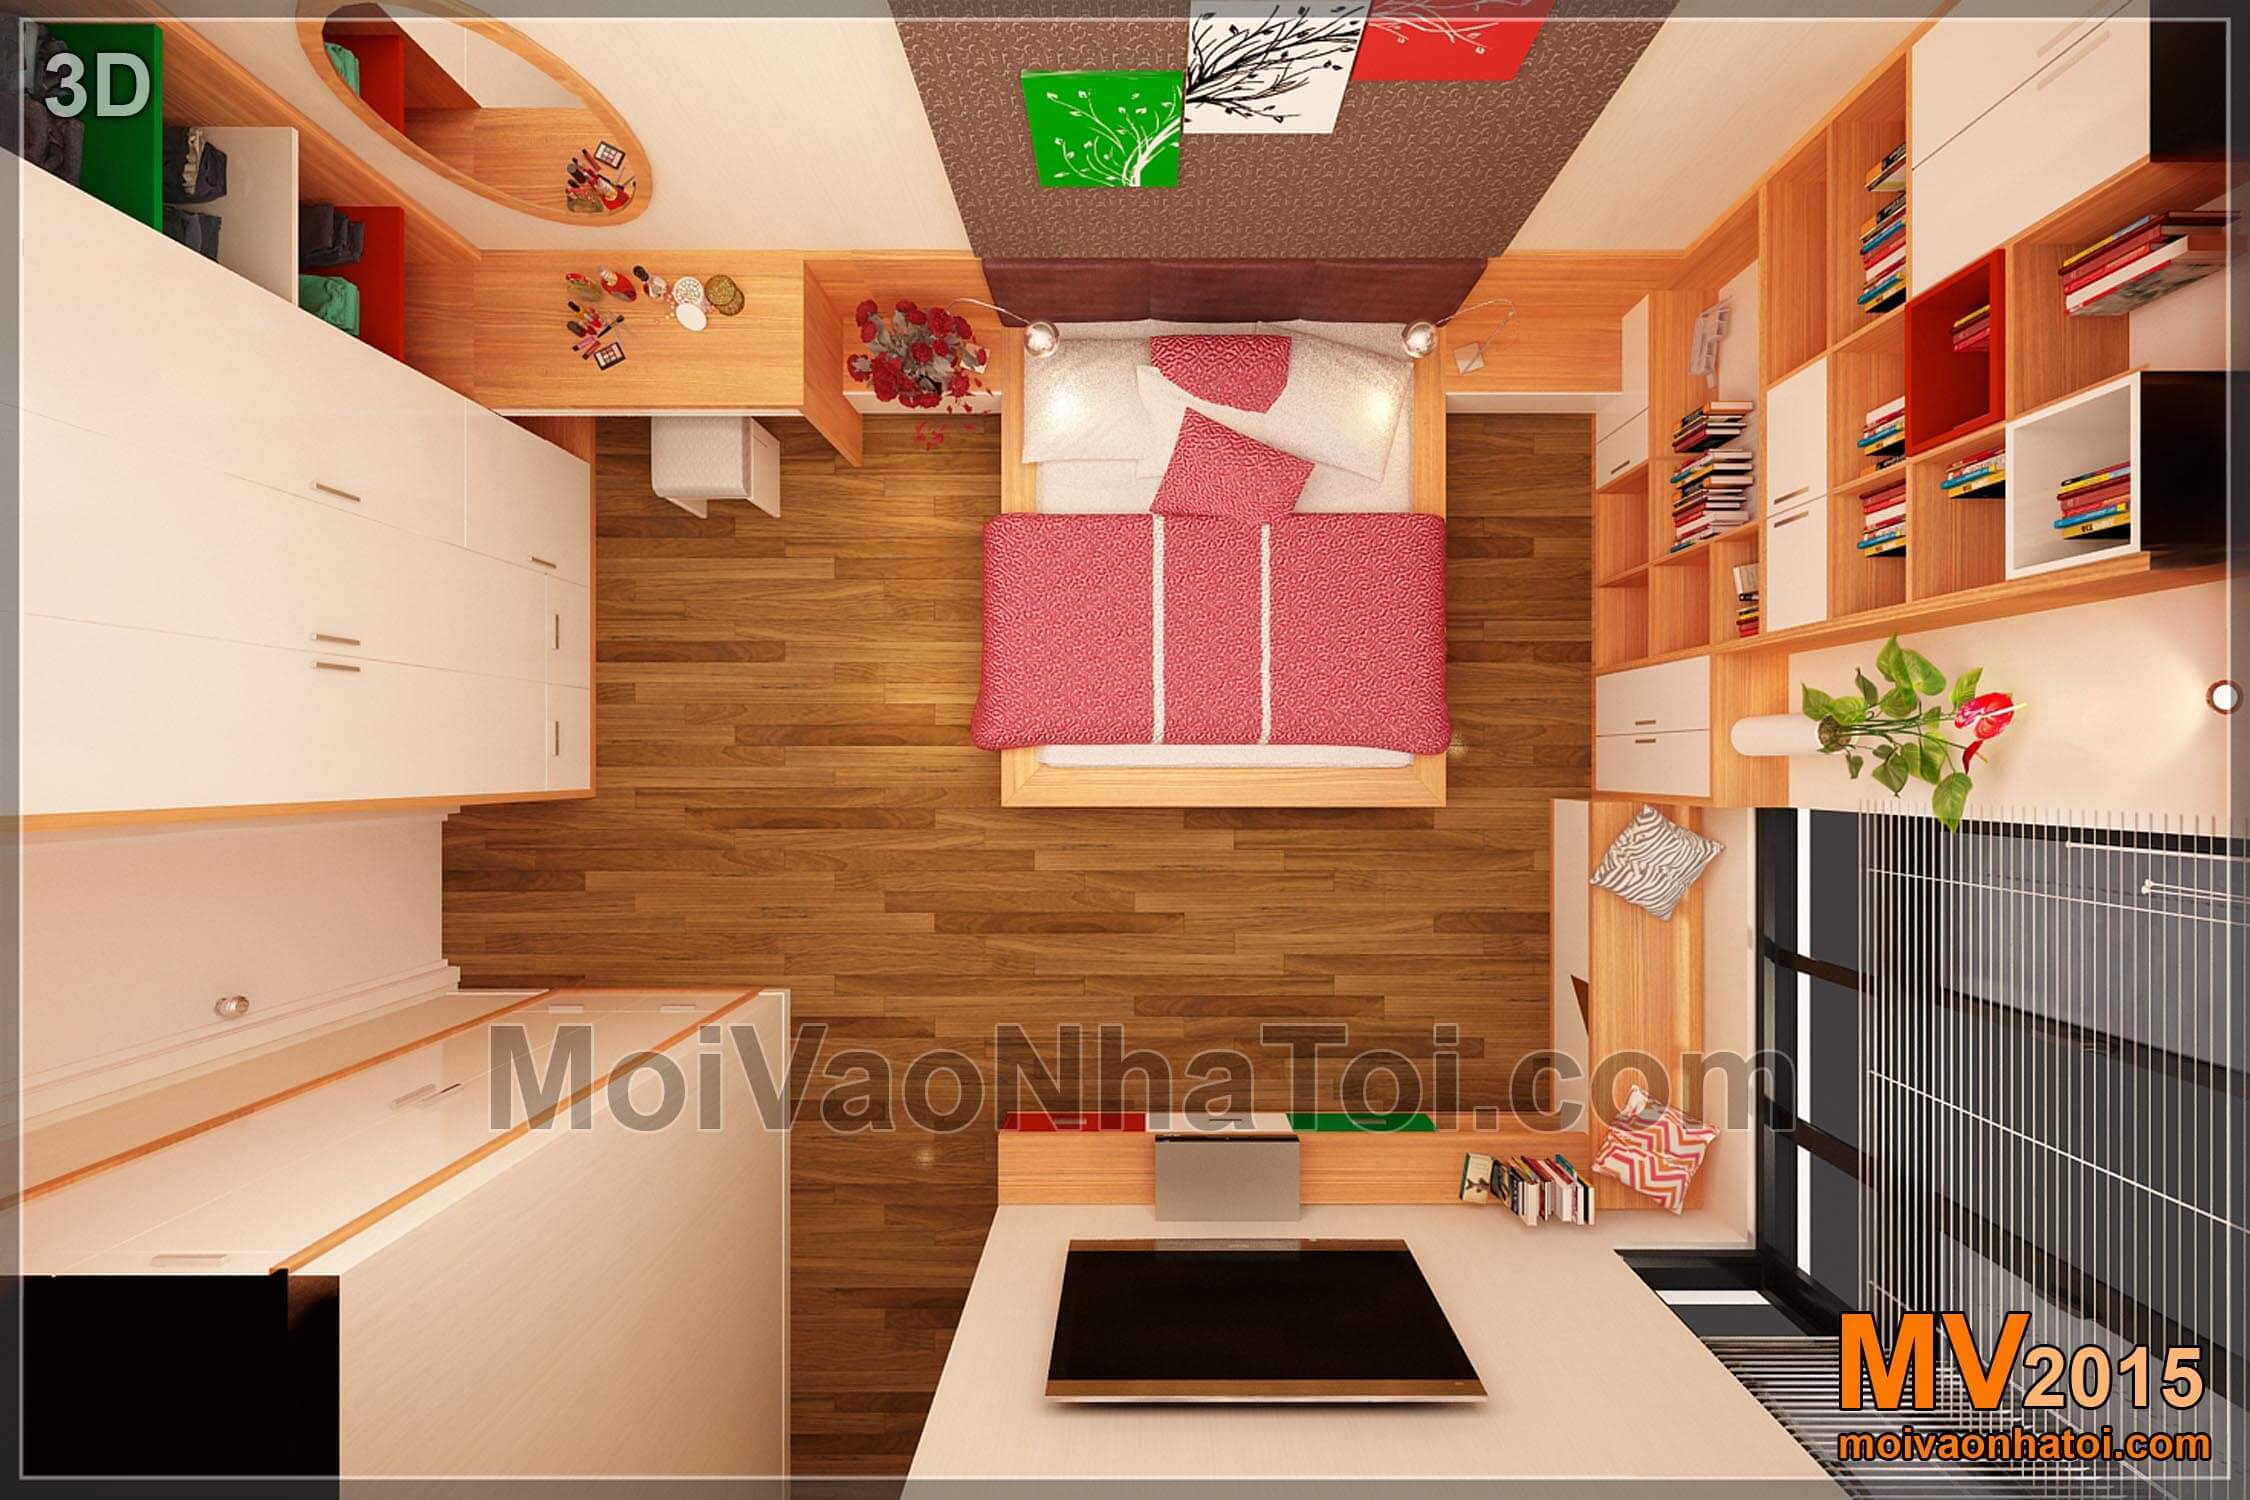 photo 3 d bedroom parents mulberry lane apartment building